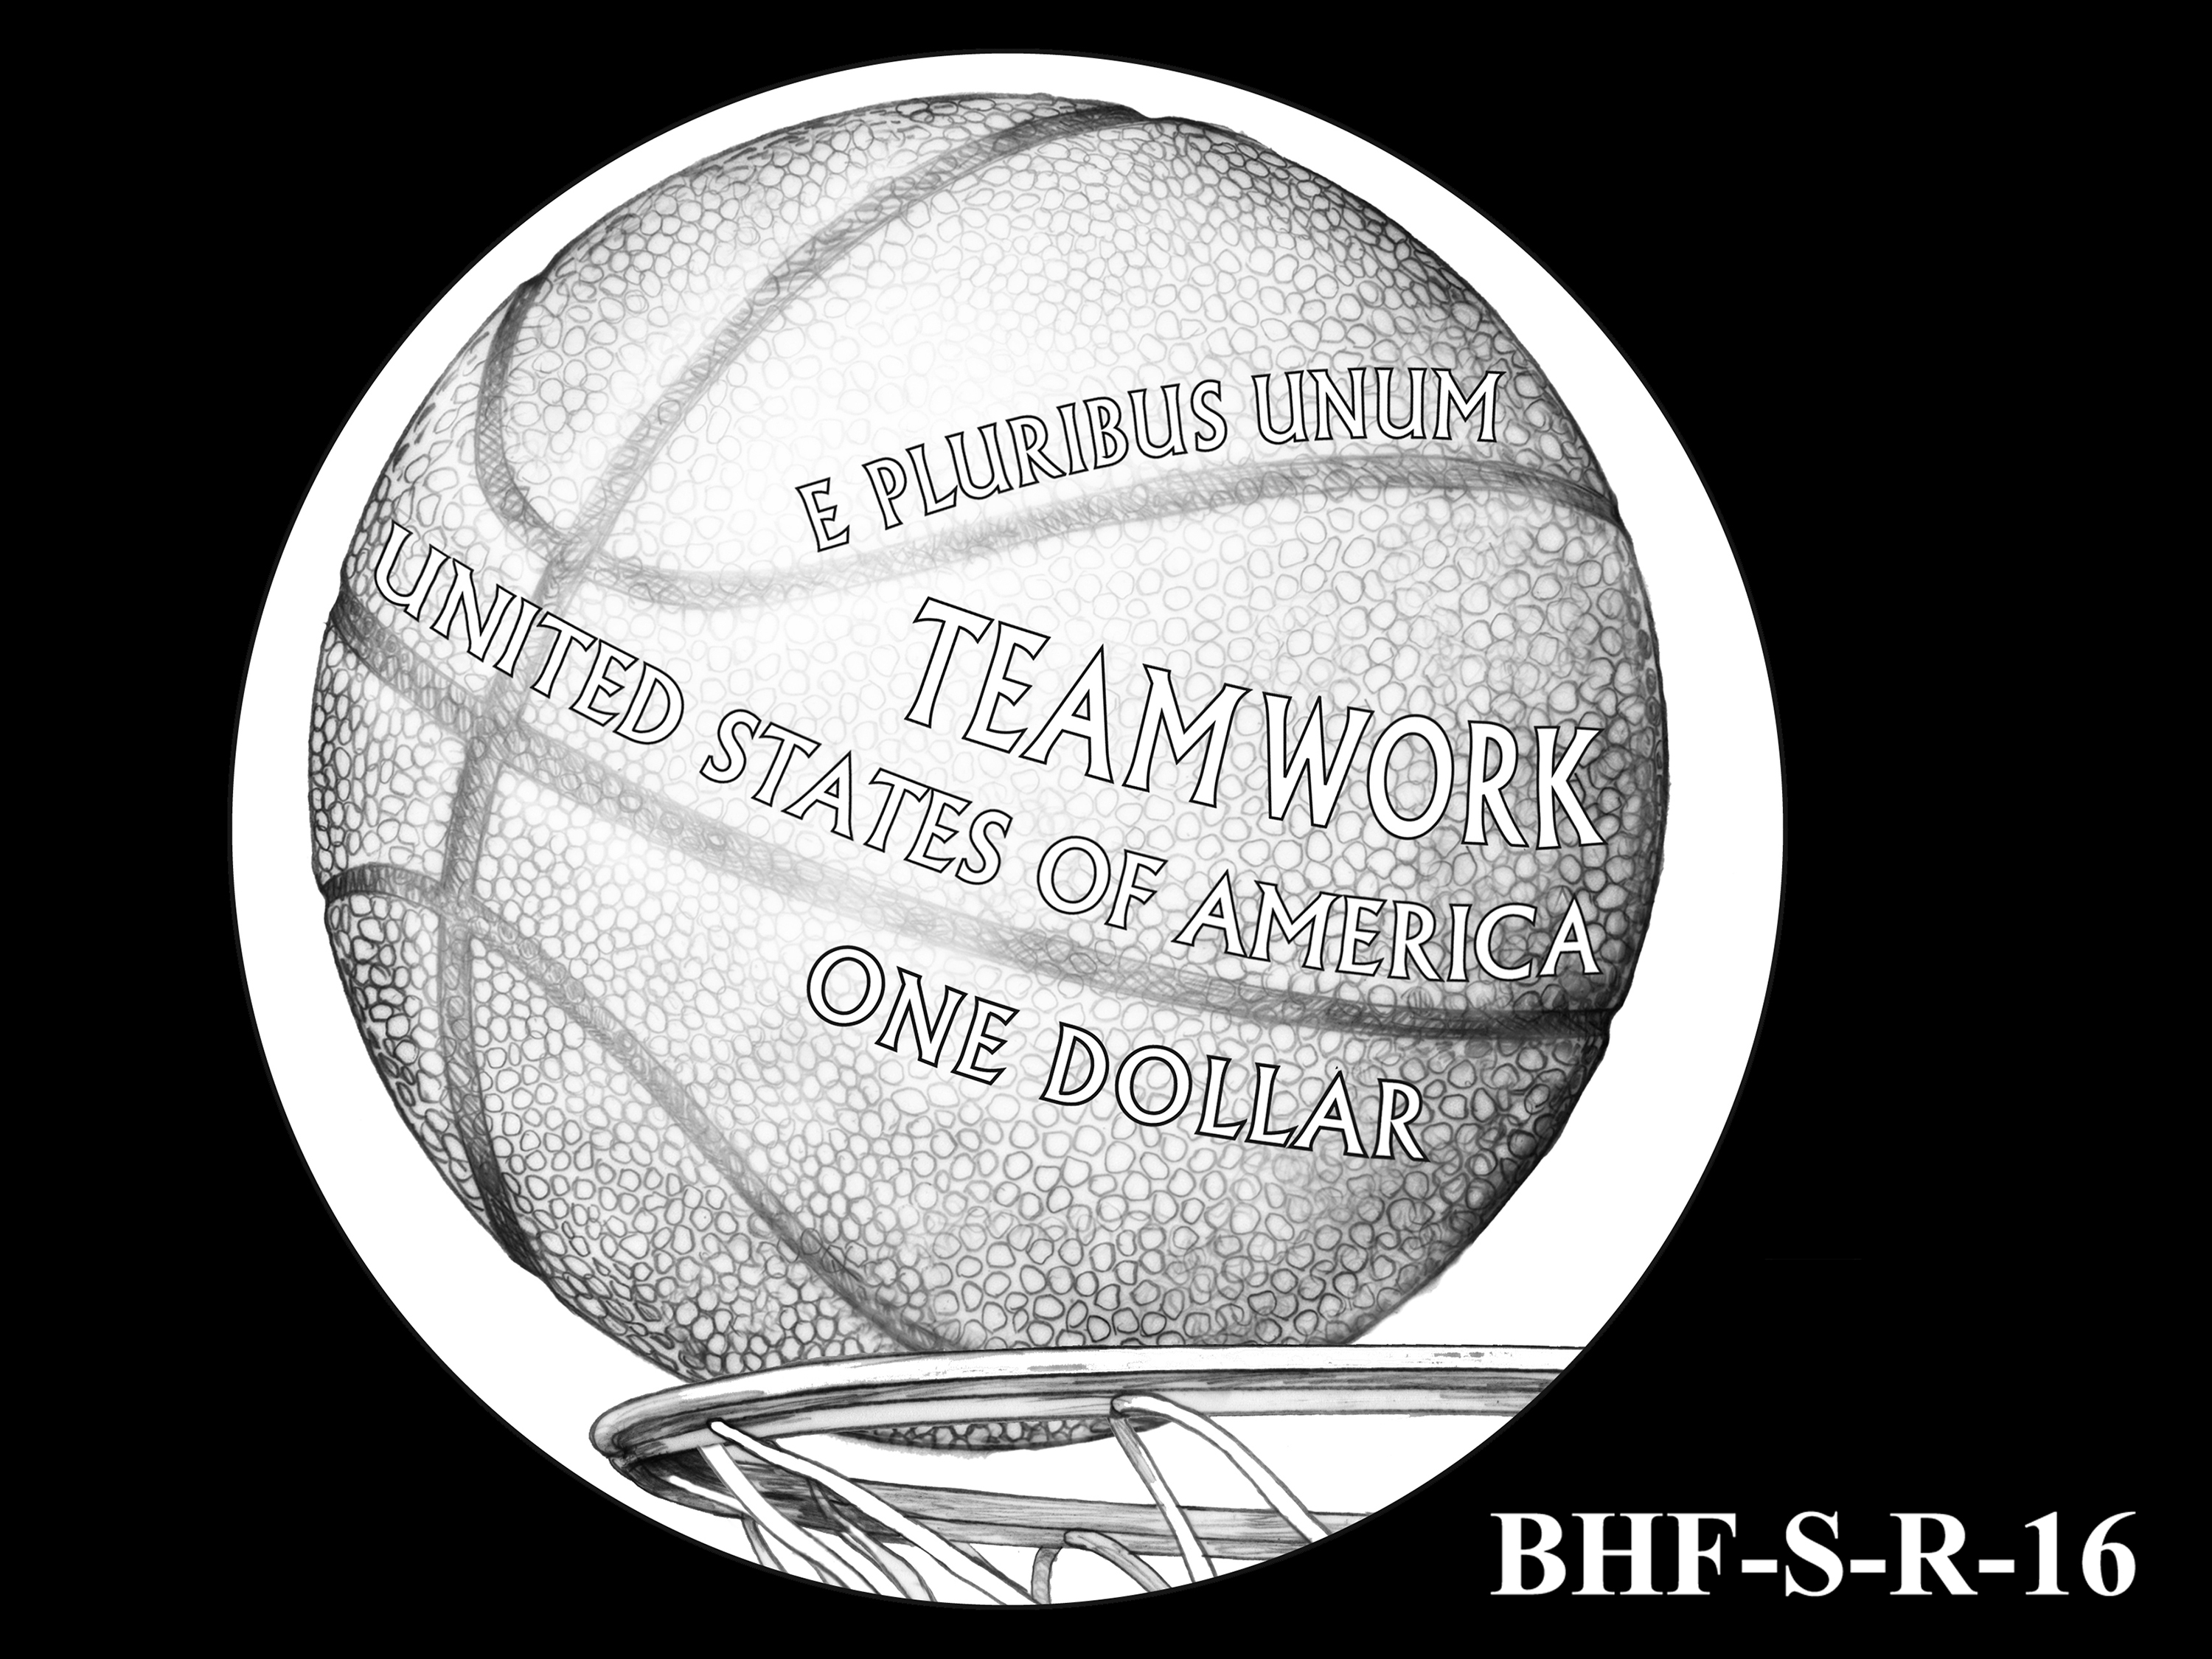 BHF-S-R-16 -- 2020 Basketball Hall of Fame Commemorative Coin Program - Silver Reverse